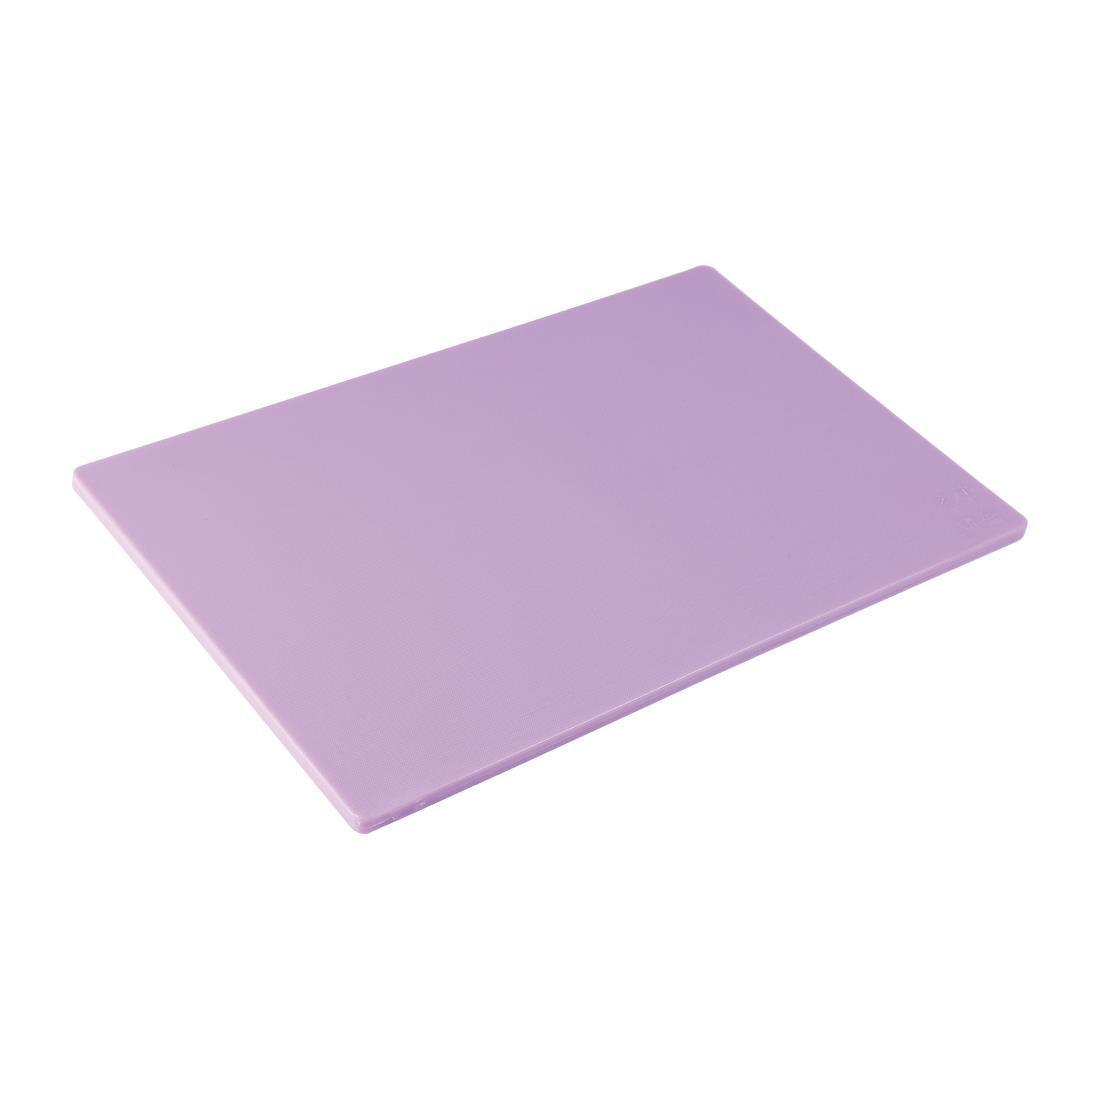 Hygiplas Standard Low Density Purple Chopping Board